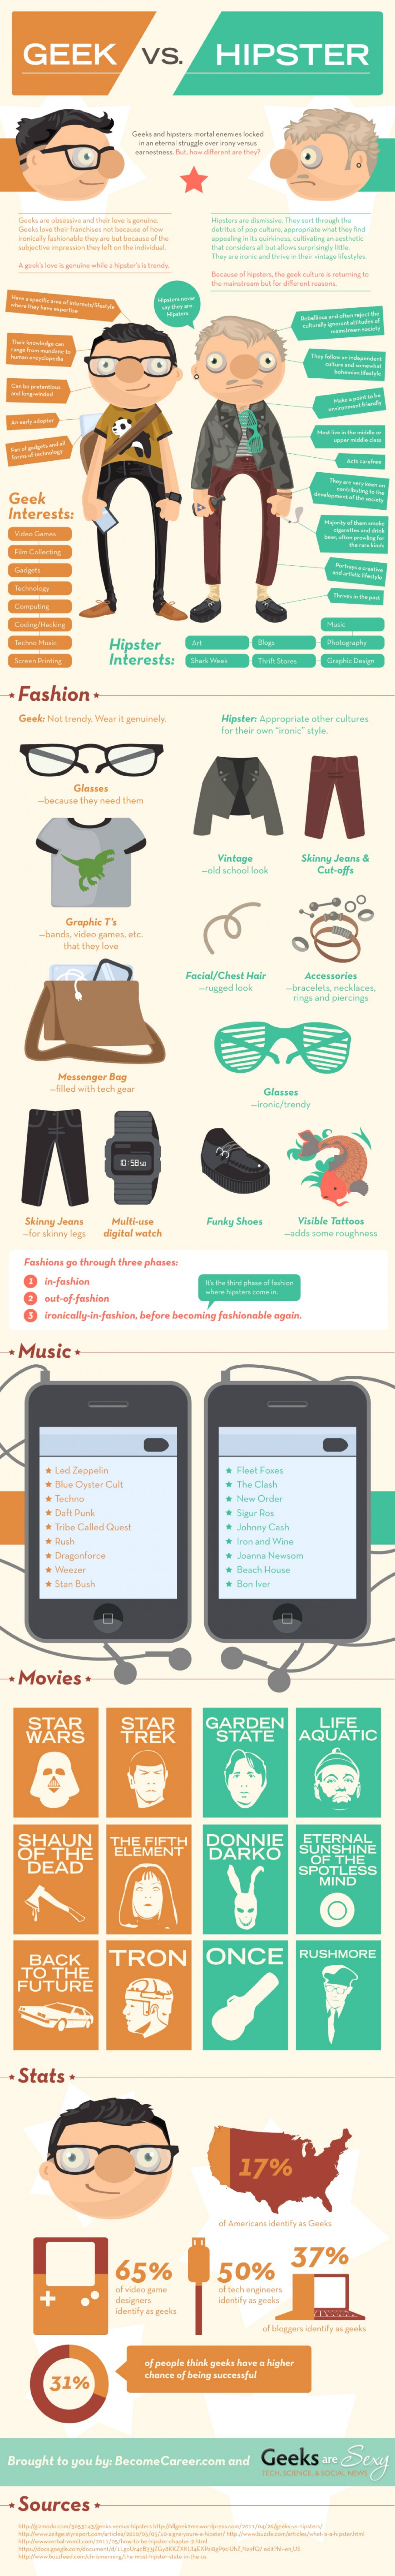 Geek vs Hipster Infographic